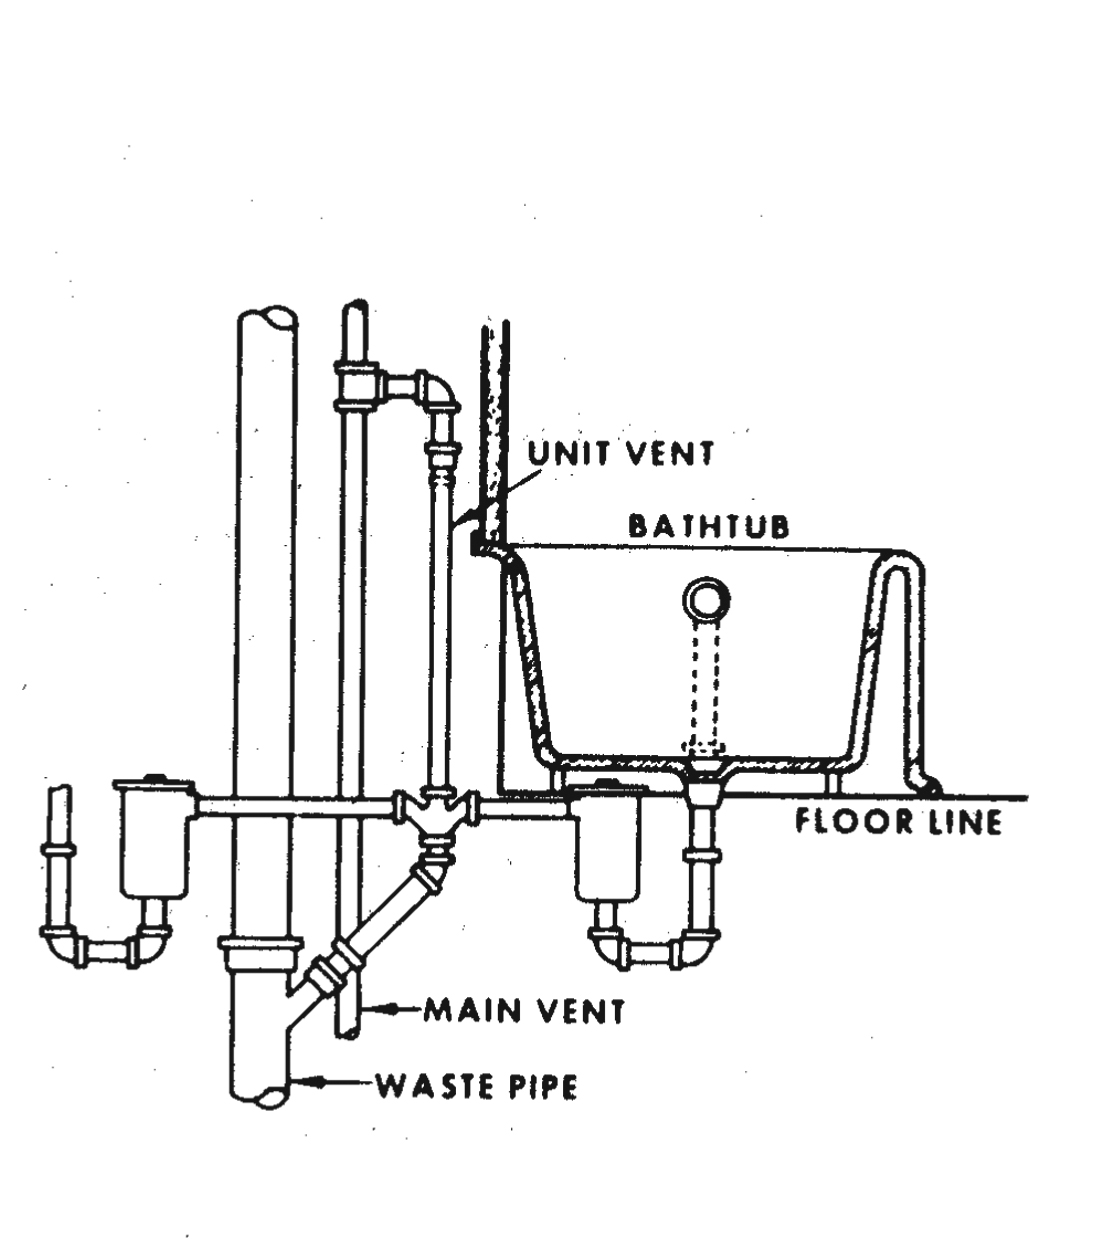 Wet Venting Layout For Bathroom Manual Guide